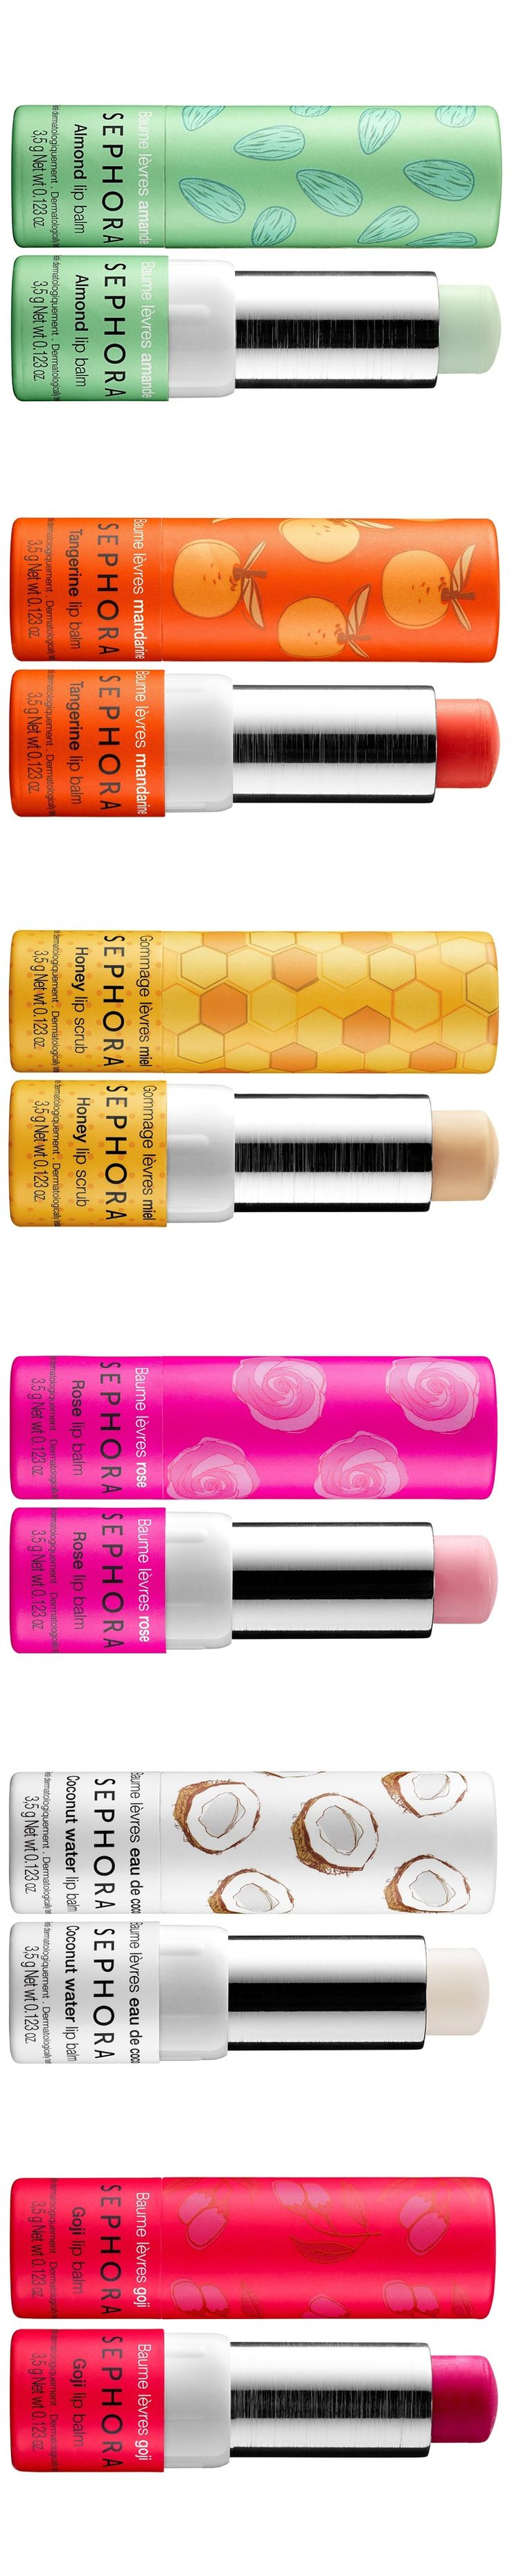 Beauty :: It's Winter and I have a cold and my lips are hoping to be saved by Sephora Lip Balm & Scrub ($6) because they are dry, flaky, and just gross. Am I like the only person in the world that gets thee worst case of dry, cracked lips when I have a cold? Seriously, alligator […] The post Sephora Lip Balm & Scrub for Spring 2017 appeared first on Musings of a Muse.